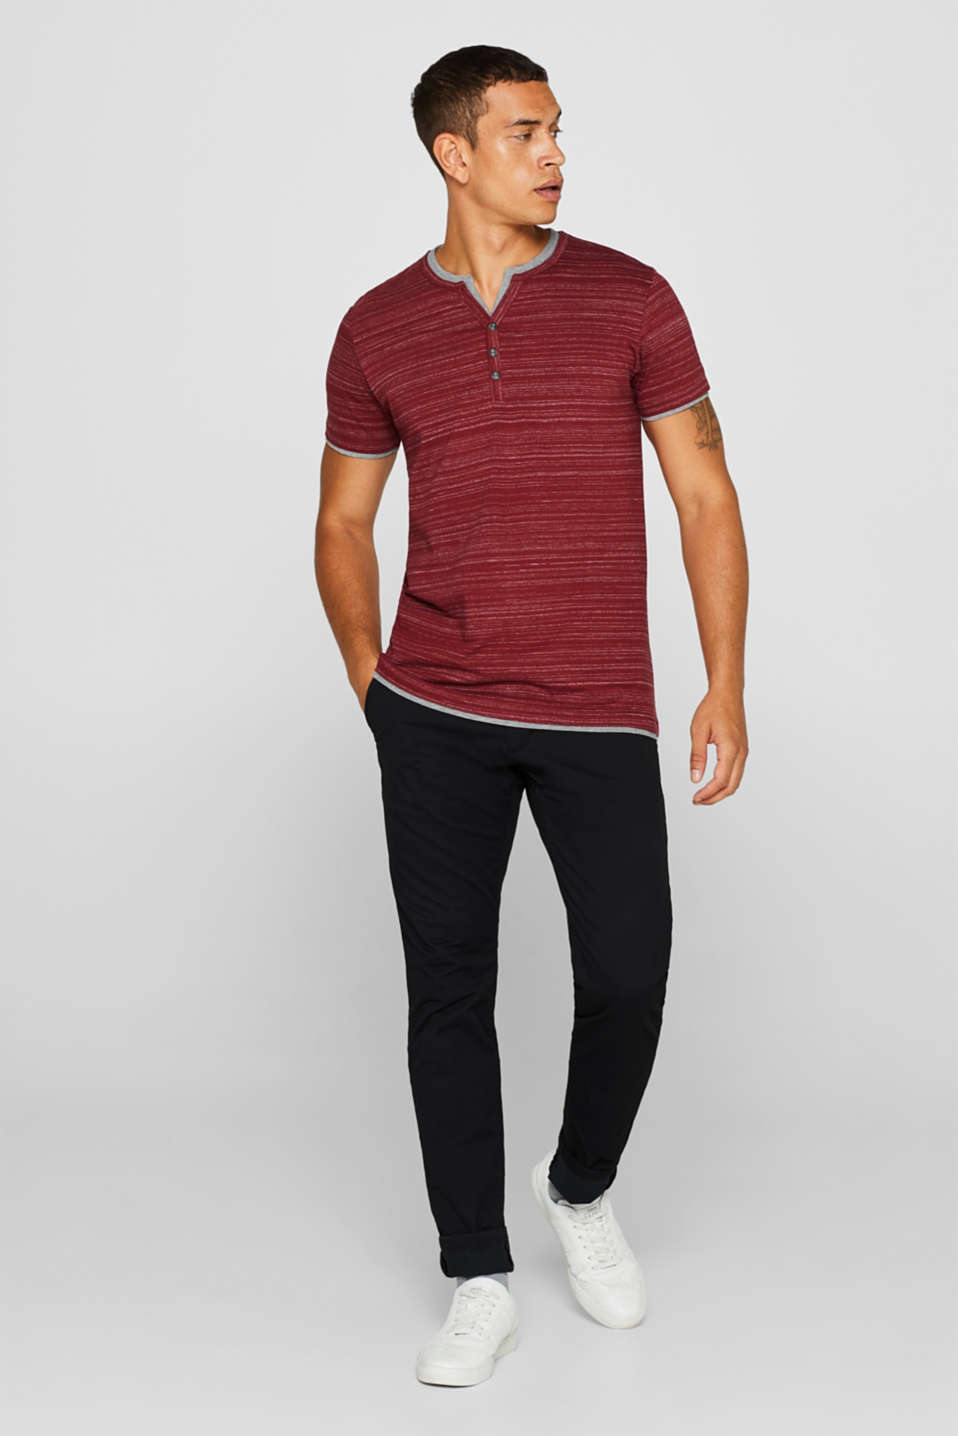 T-shirt with a layered look, made of jersey, BORDEAUX RED, detail image number 2